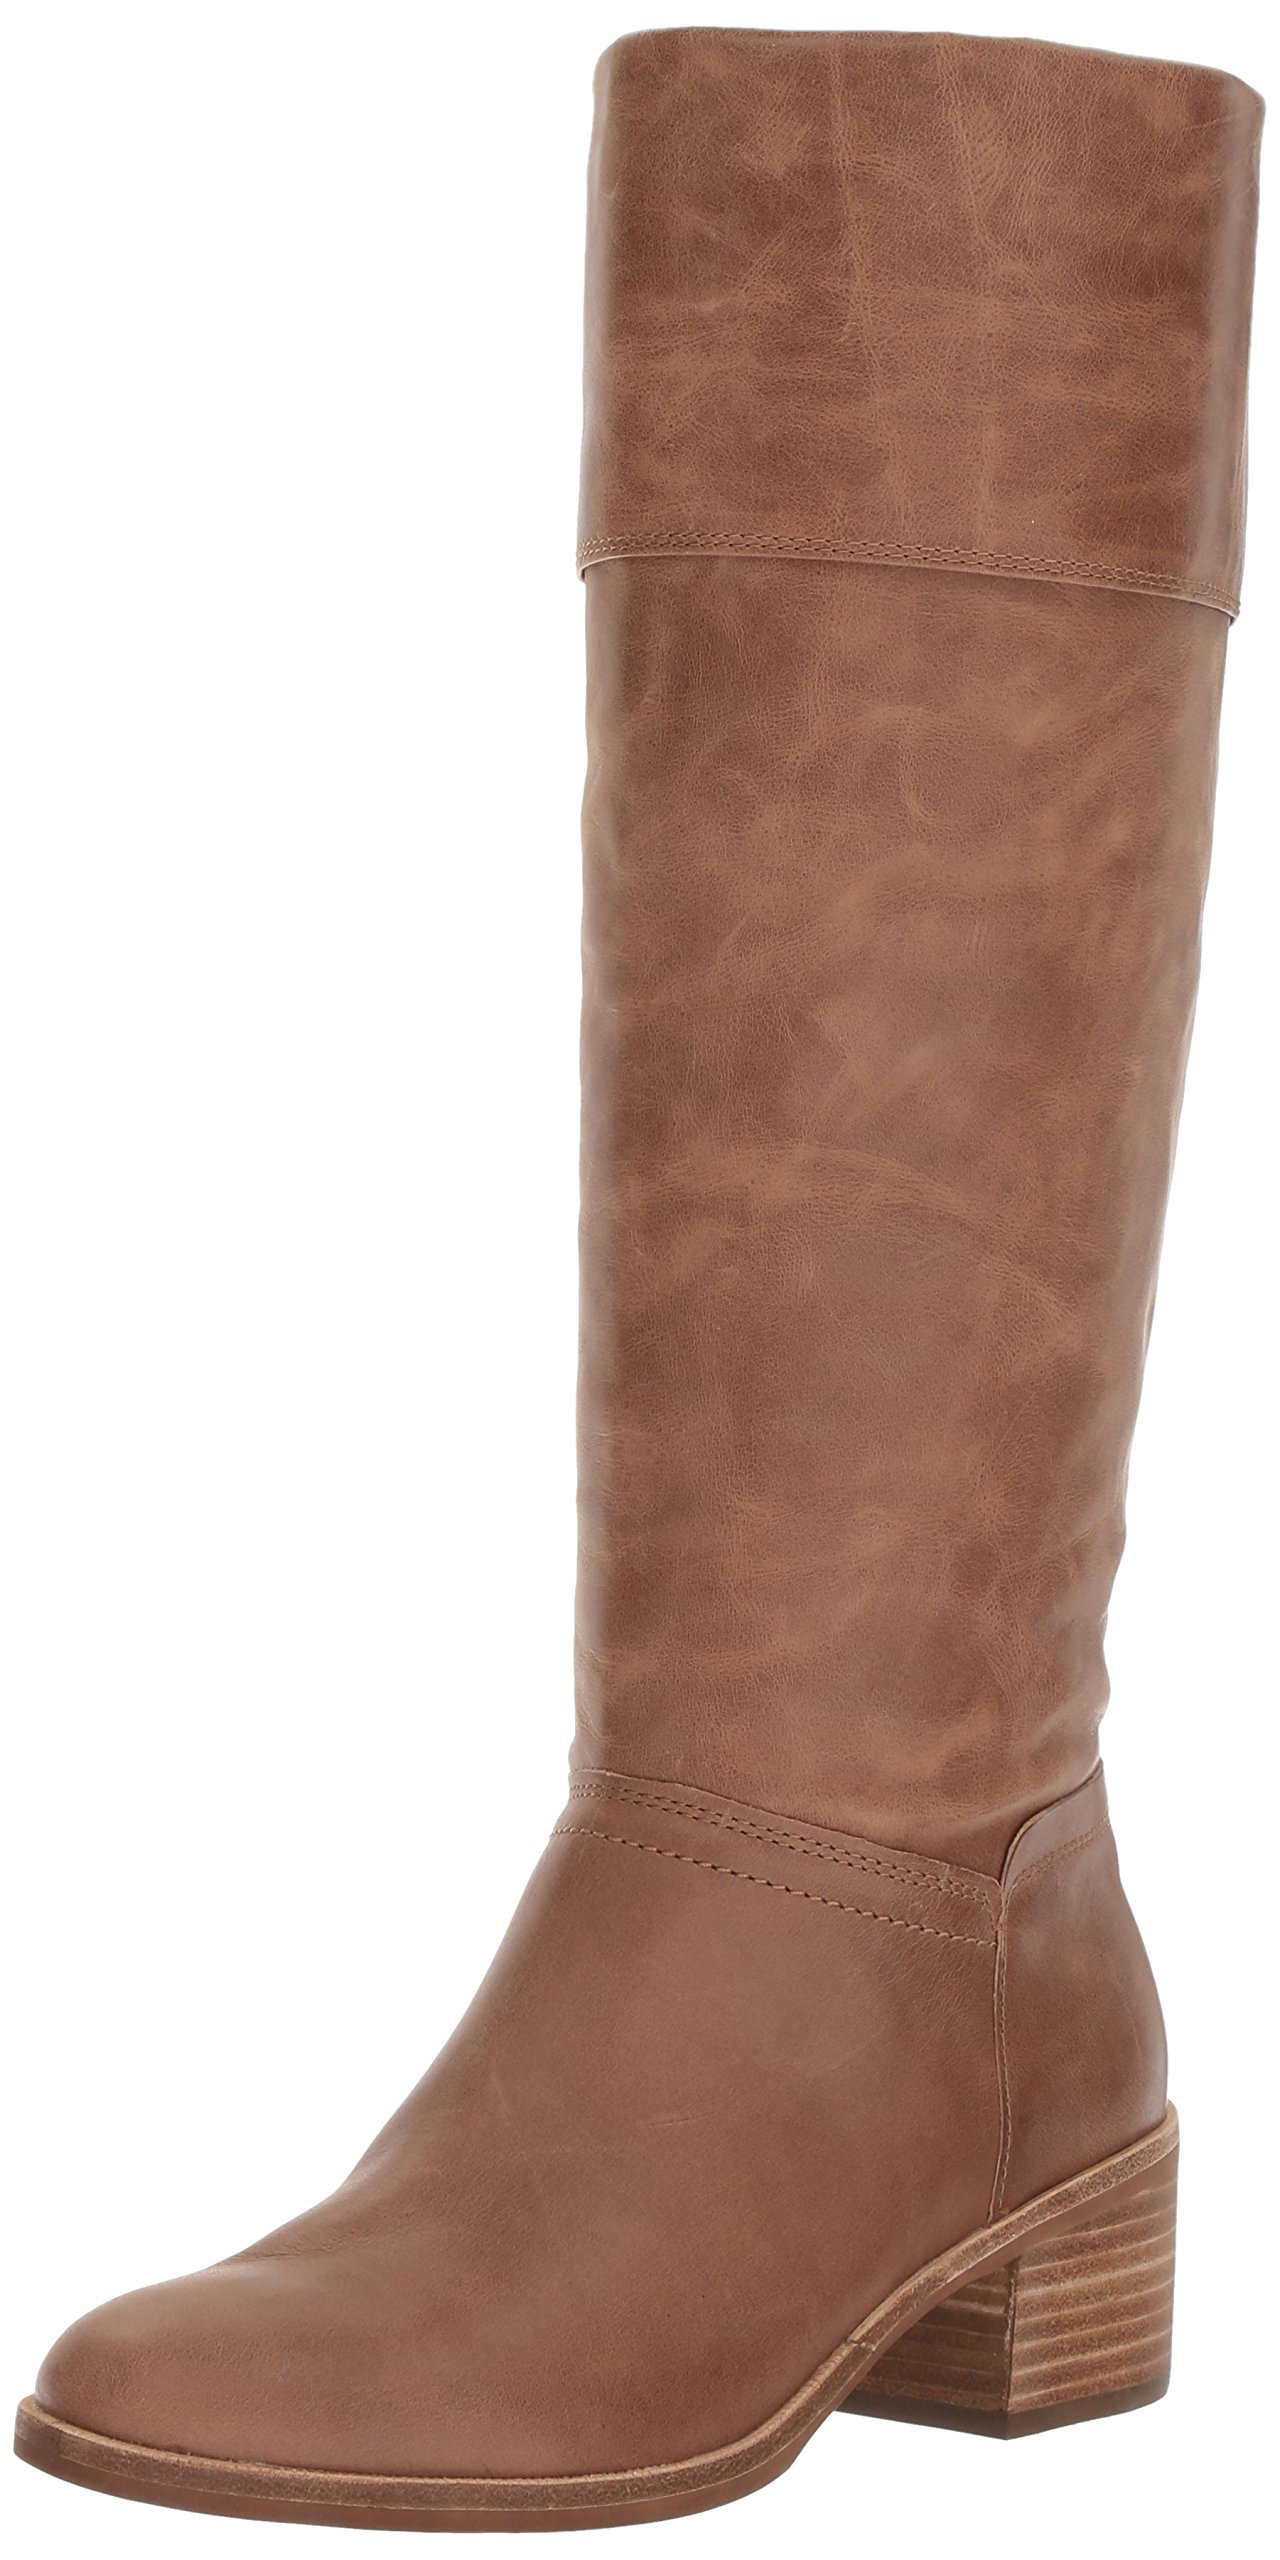 UGG Women's Carlin Harness Boot,Taupe,9 M US